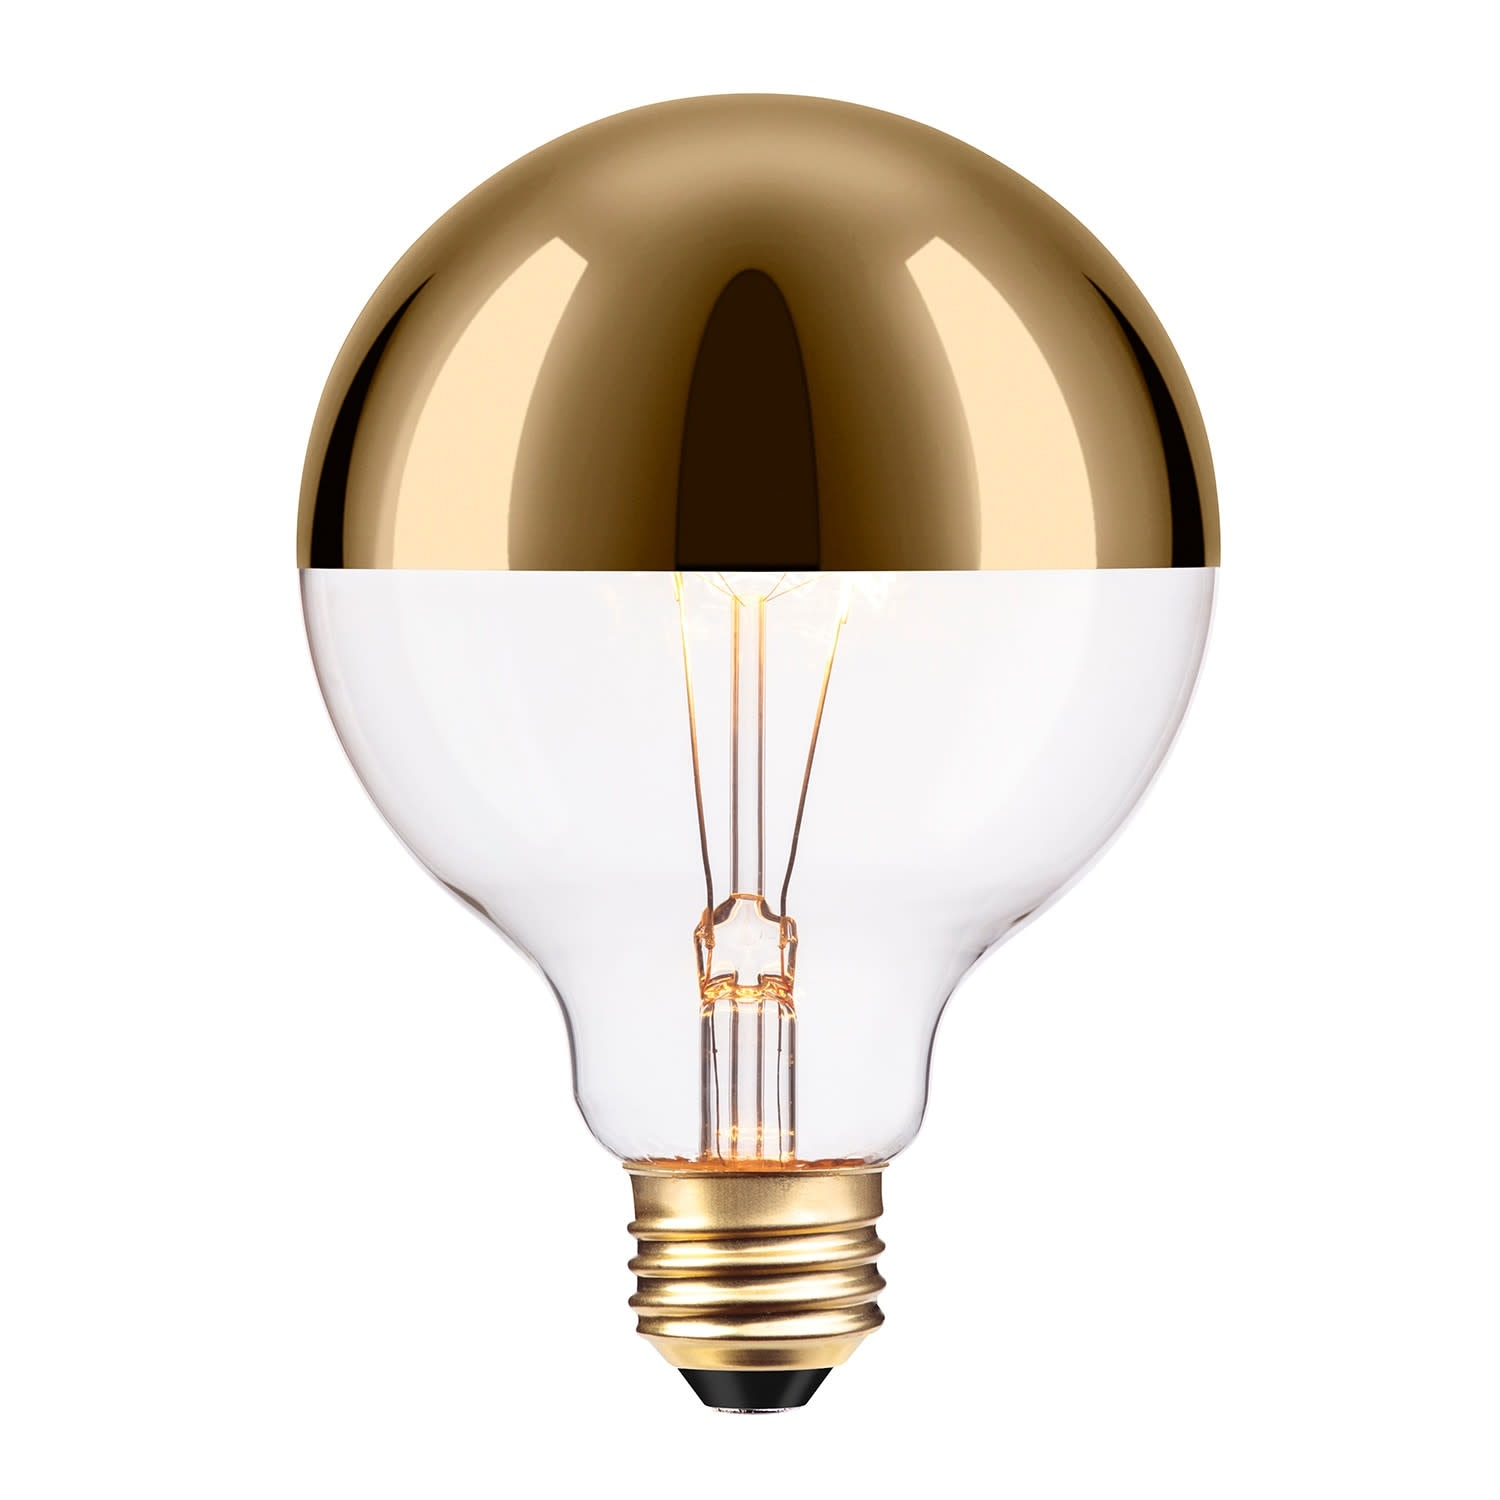 40 Watt In Lumen Globe Electric 84649 Single Oro 40 Watt G25 Medium E26 220 Lumen Vintage Incandescent Bulb Clear N A